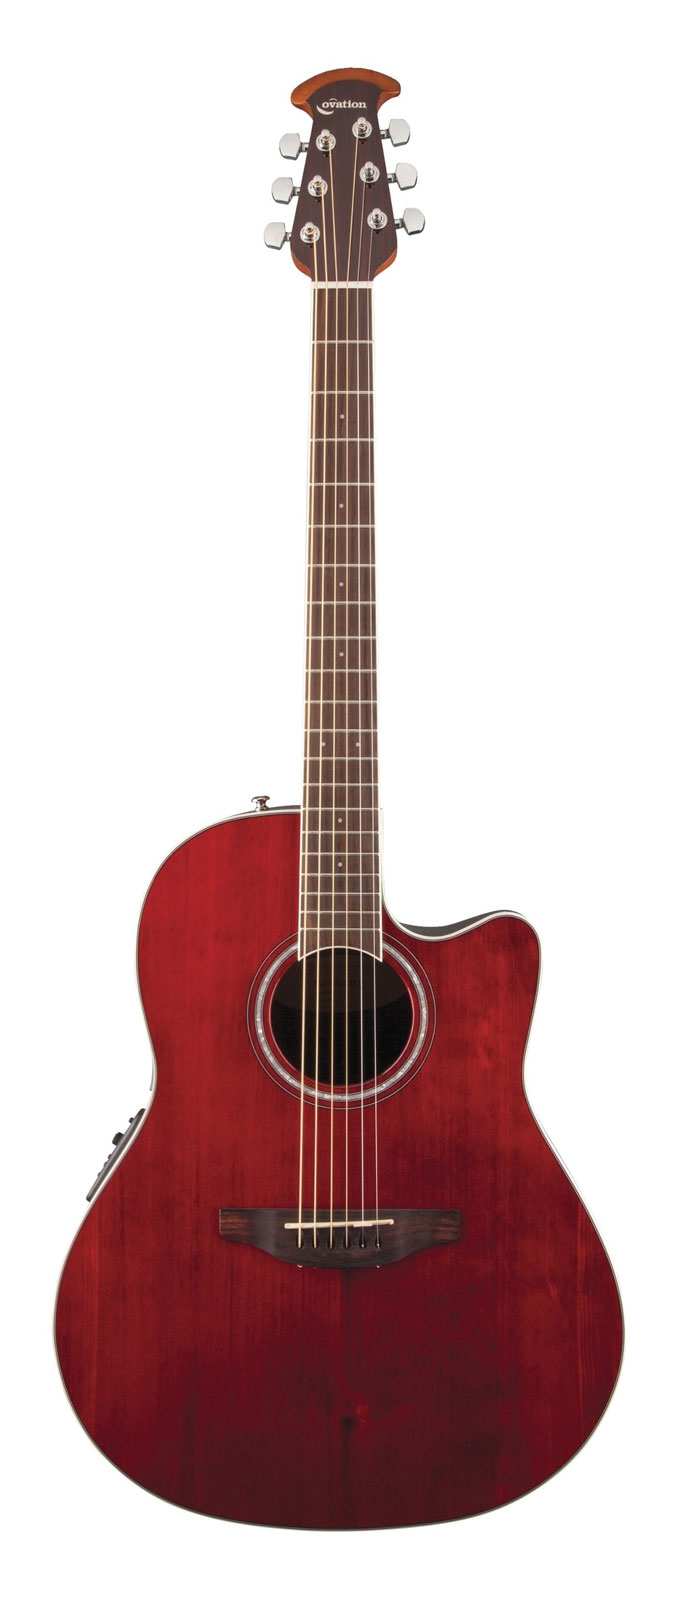 CELEBRITY STANDARD CS24RR RUBY RED